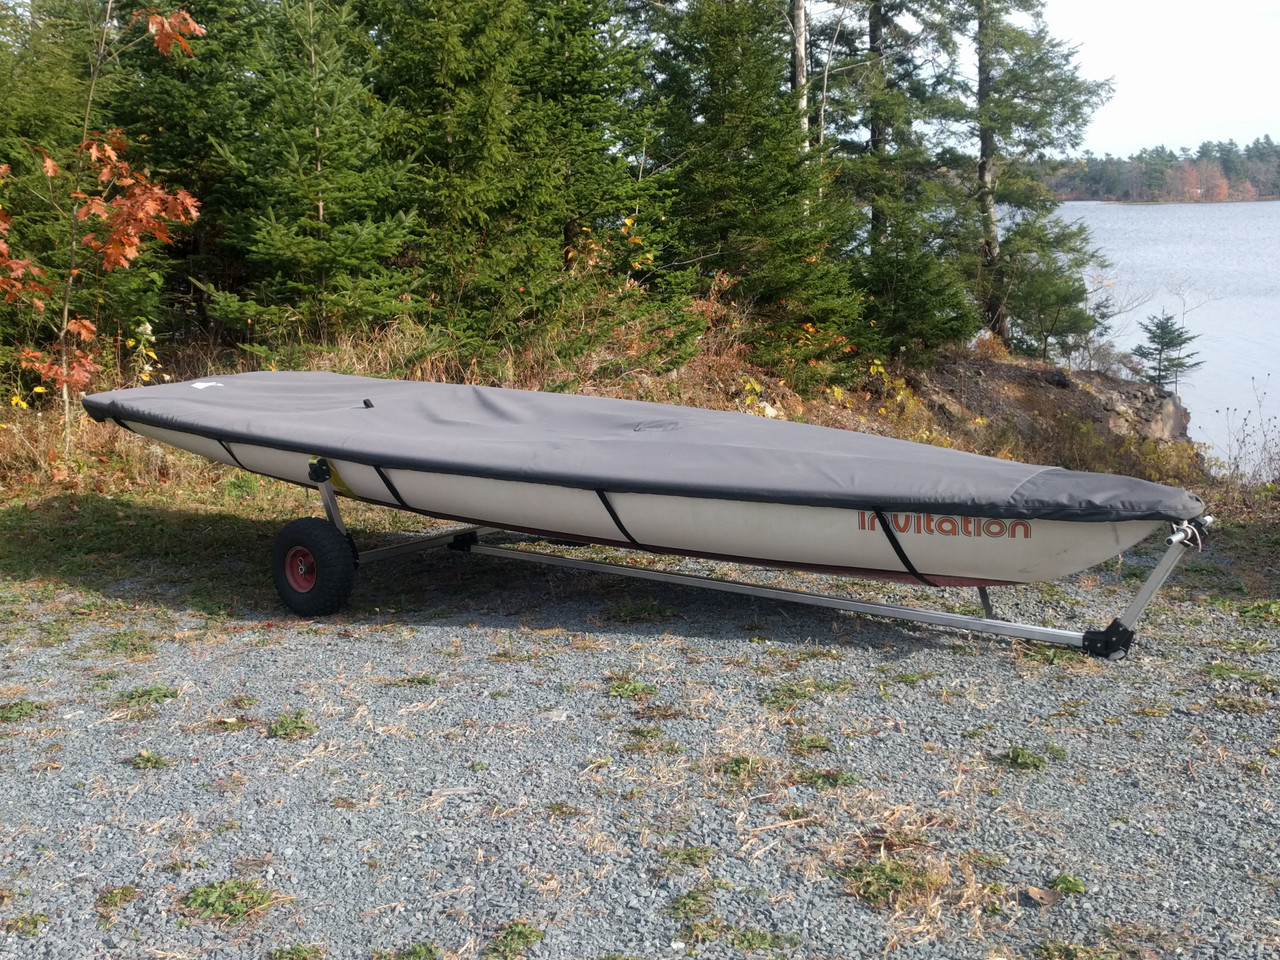 Deck Cover by SLO Sail and Canvas to protect your Bombardier Invitation 3.8 from dirt, leaves and debris.